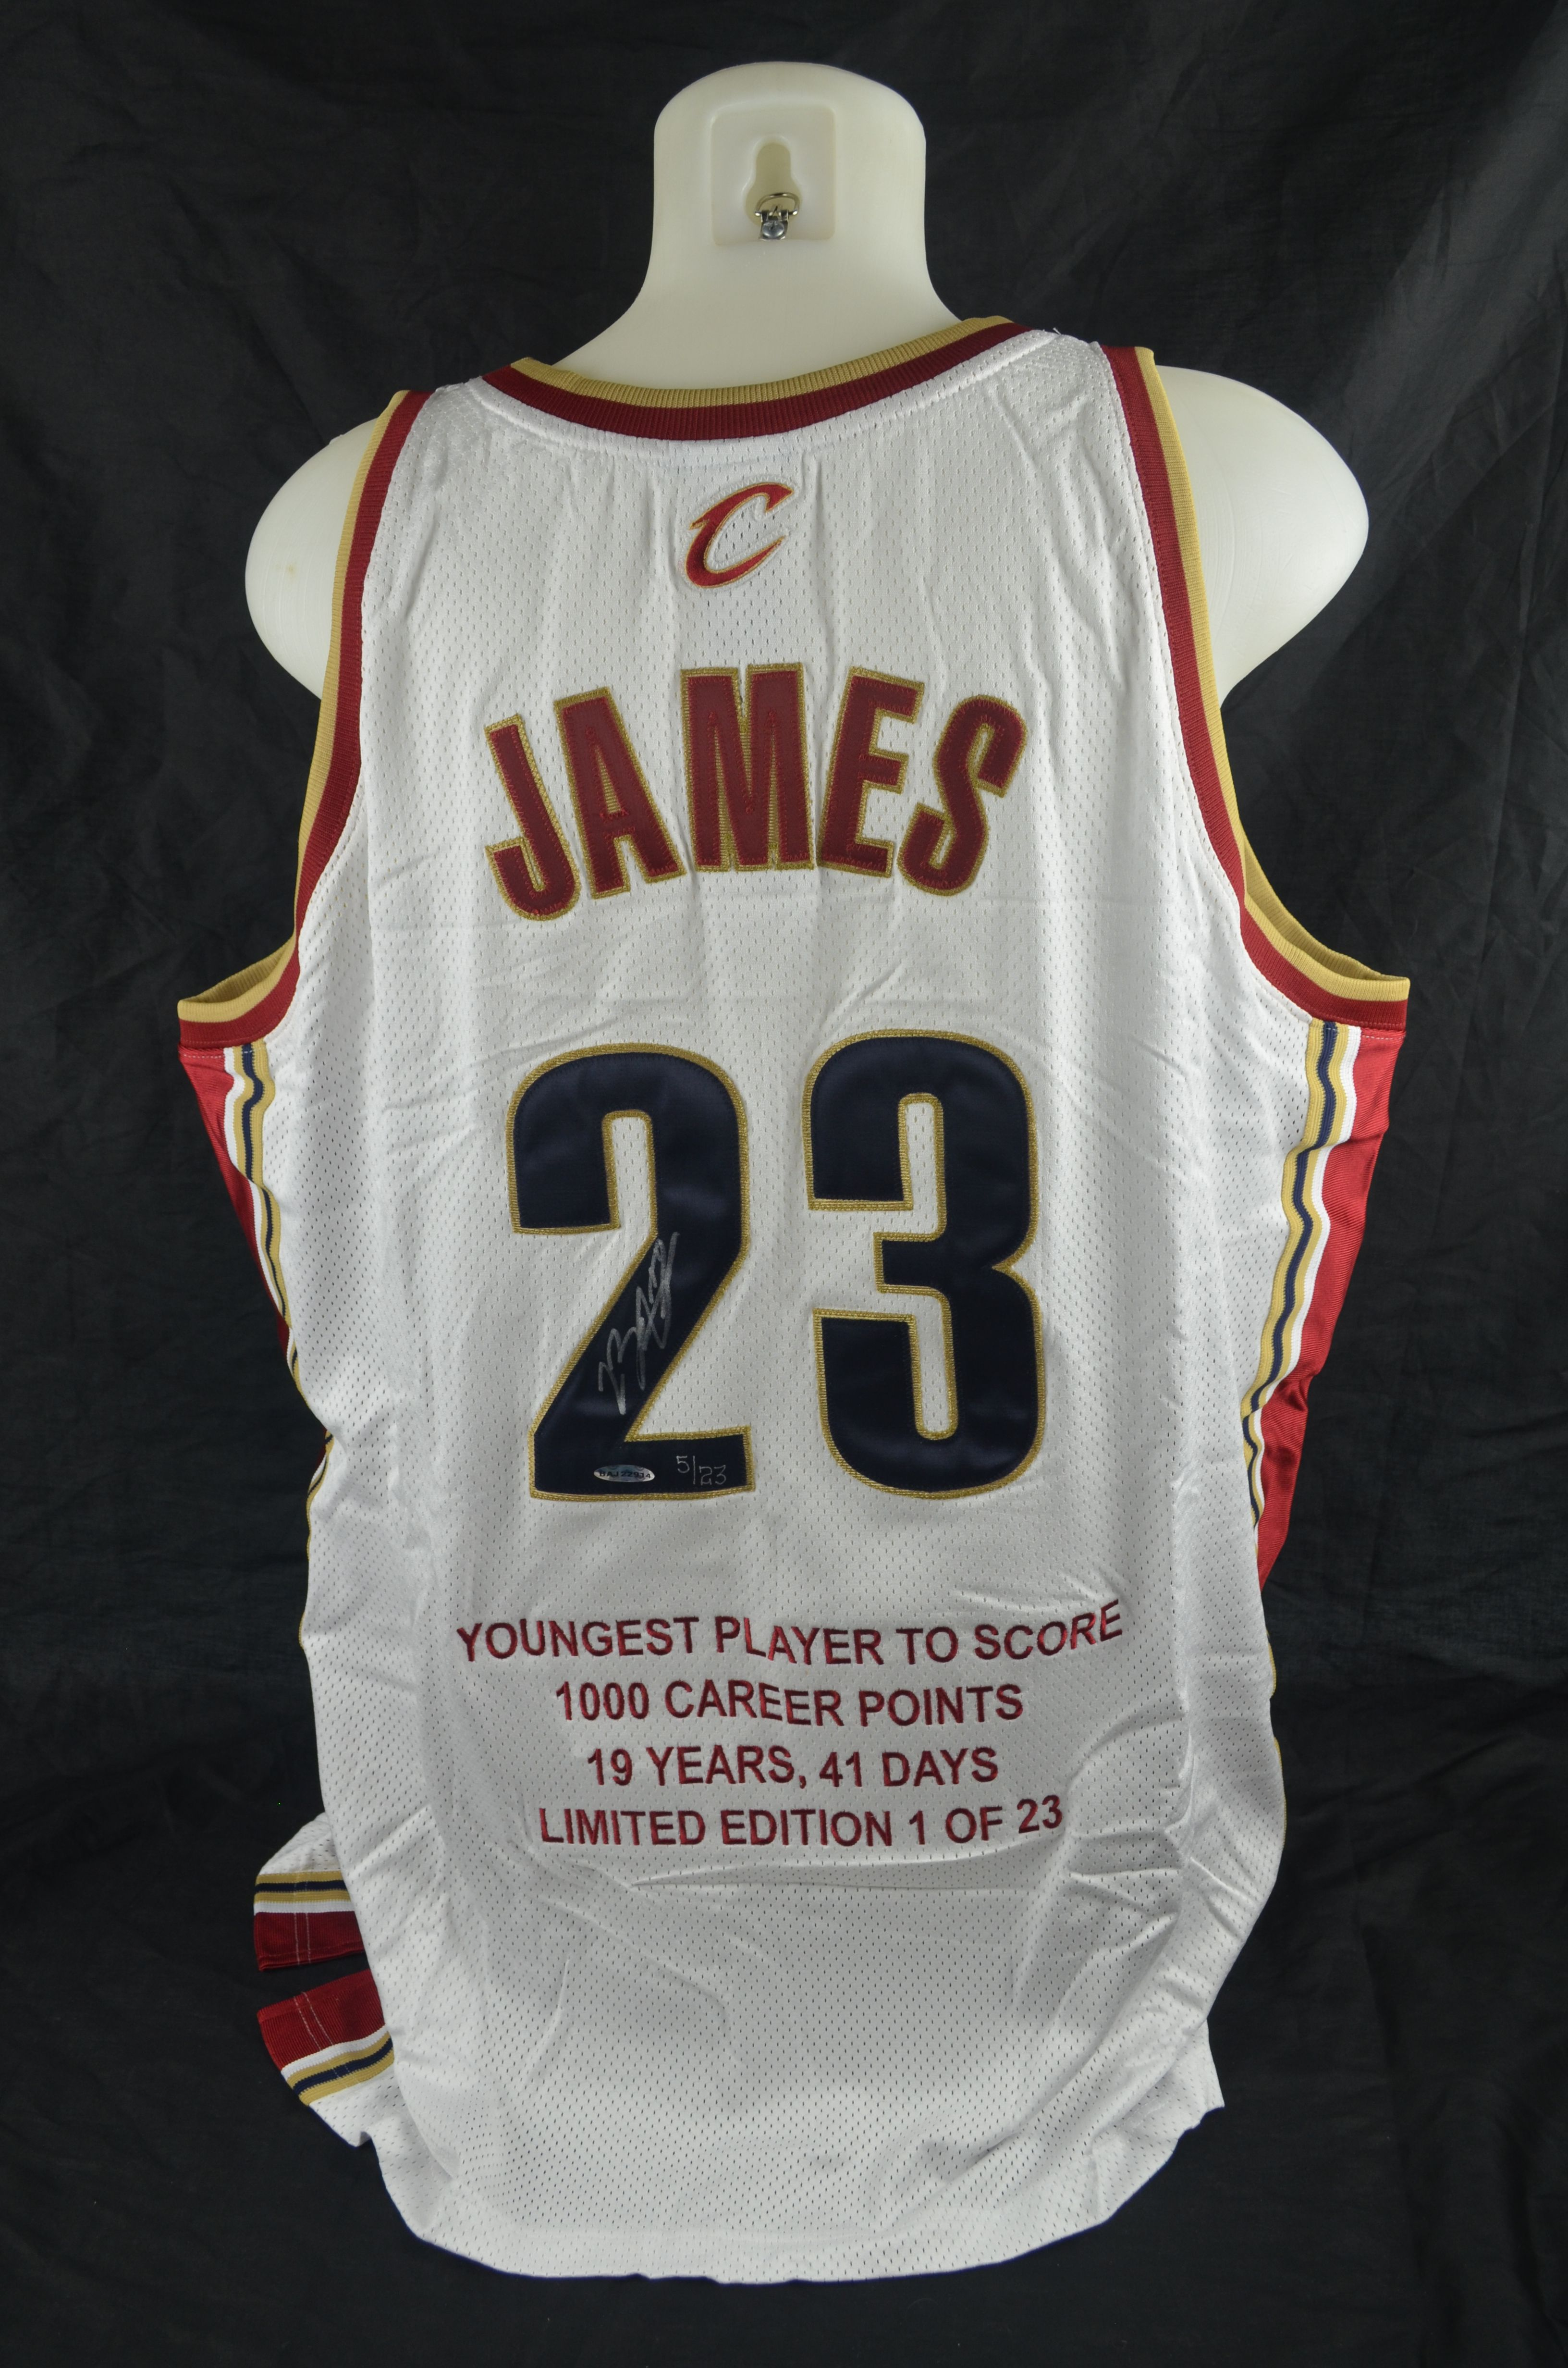 lebron james signed jersey